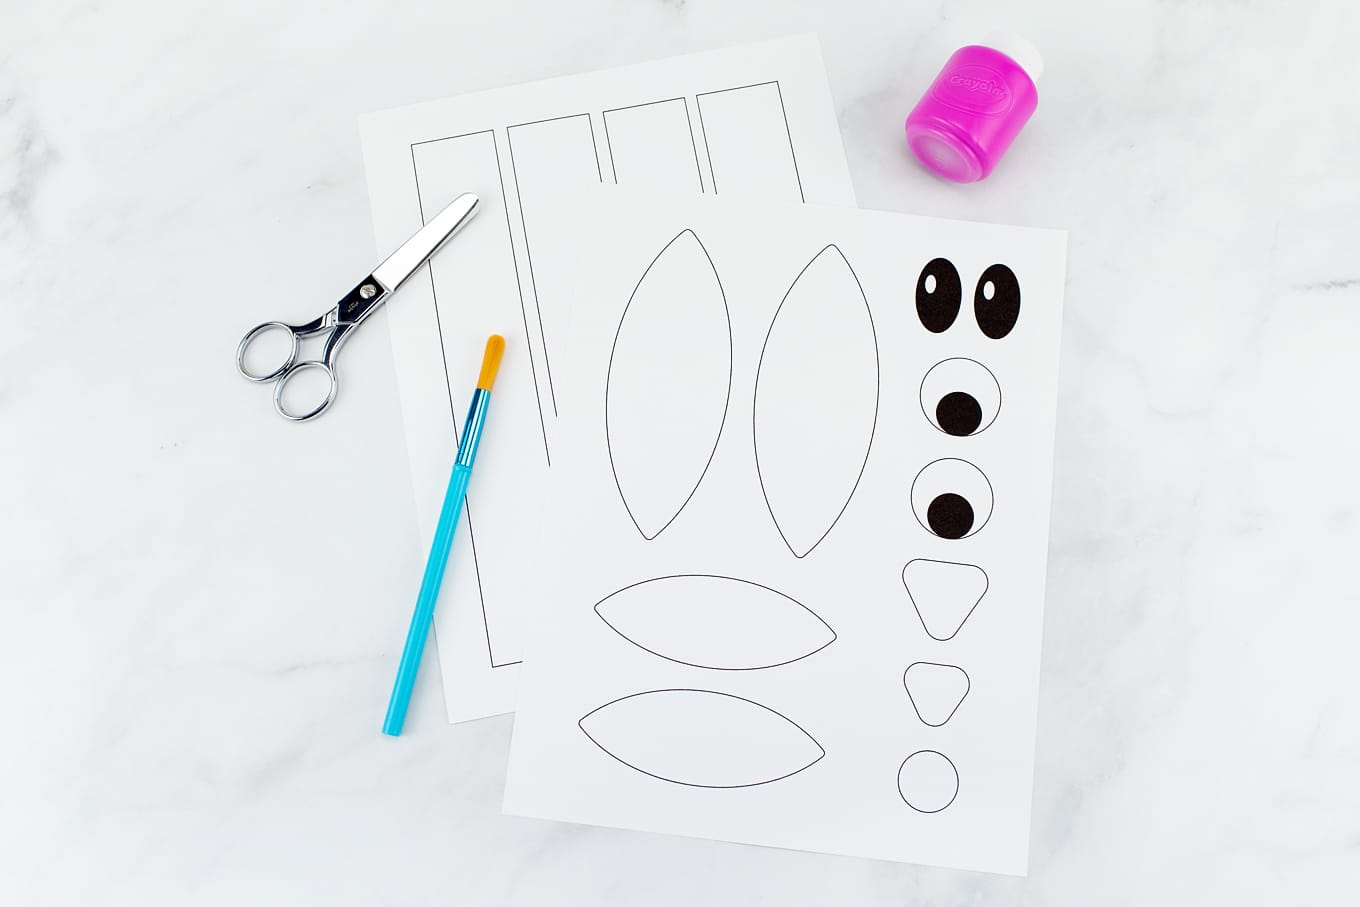 Materials Needed for Paper Bag Bunny Craft